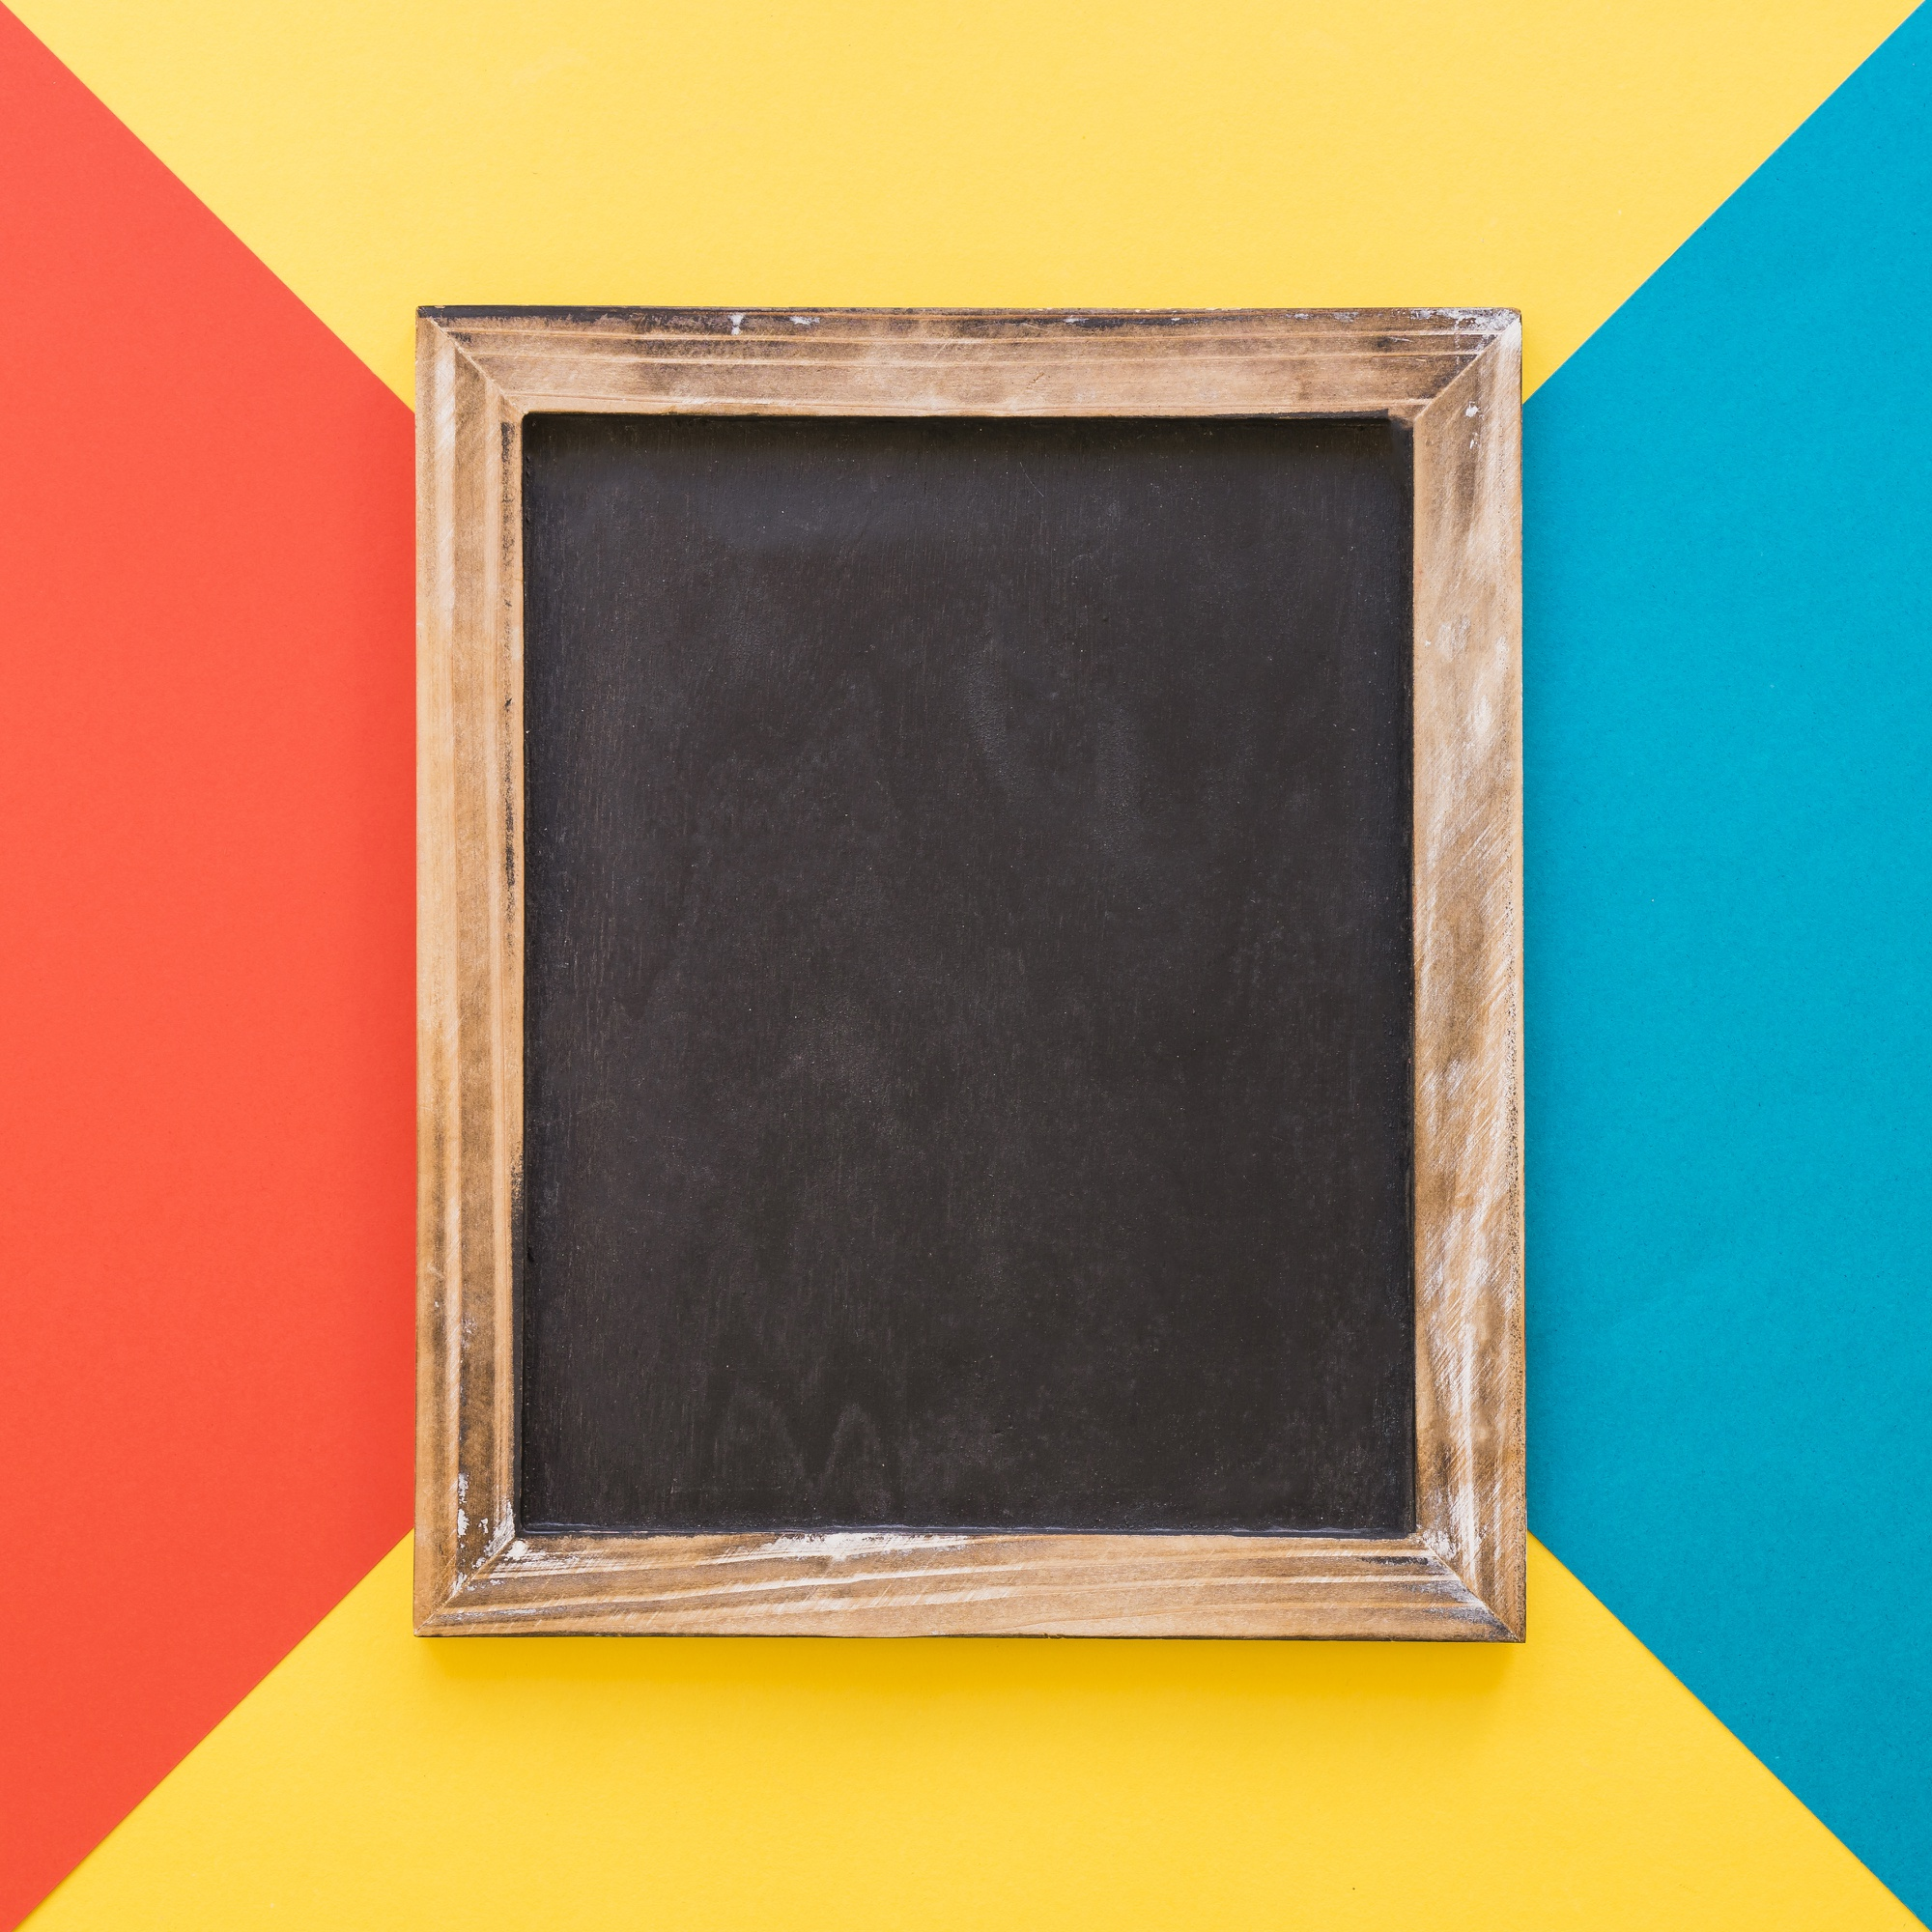 Vertical slate on colorful geometric background